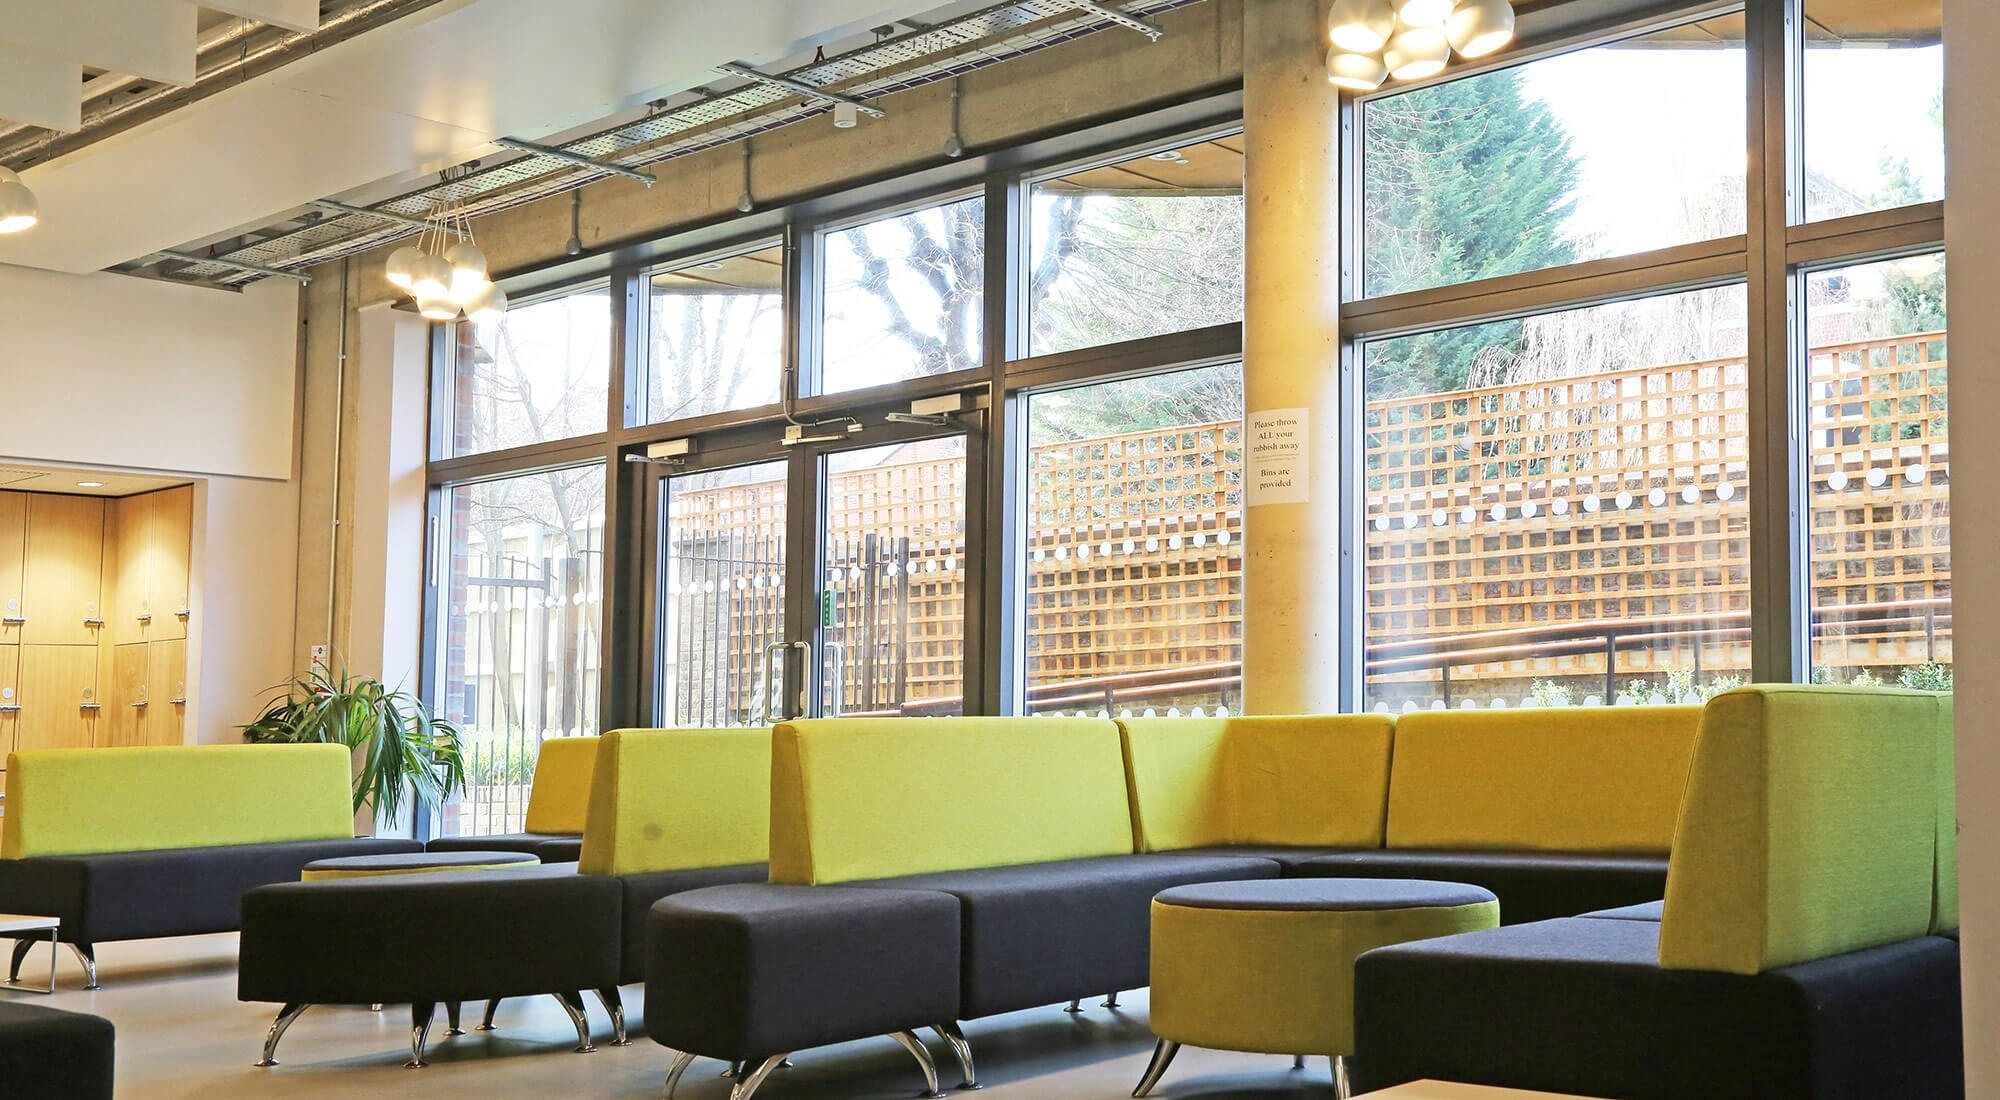 Interior Design And Build for St Benedicts School